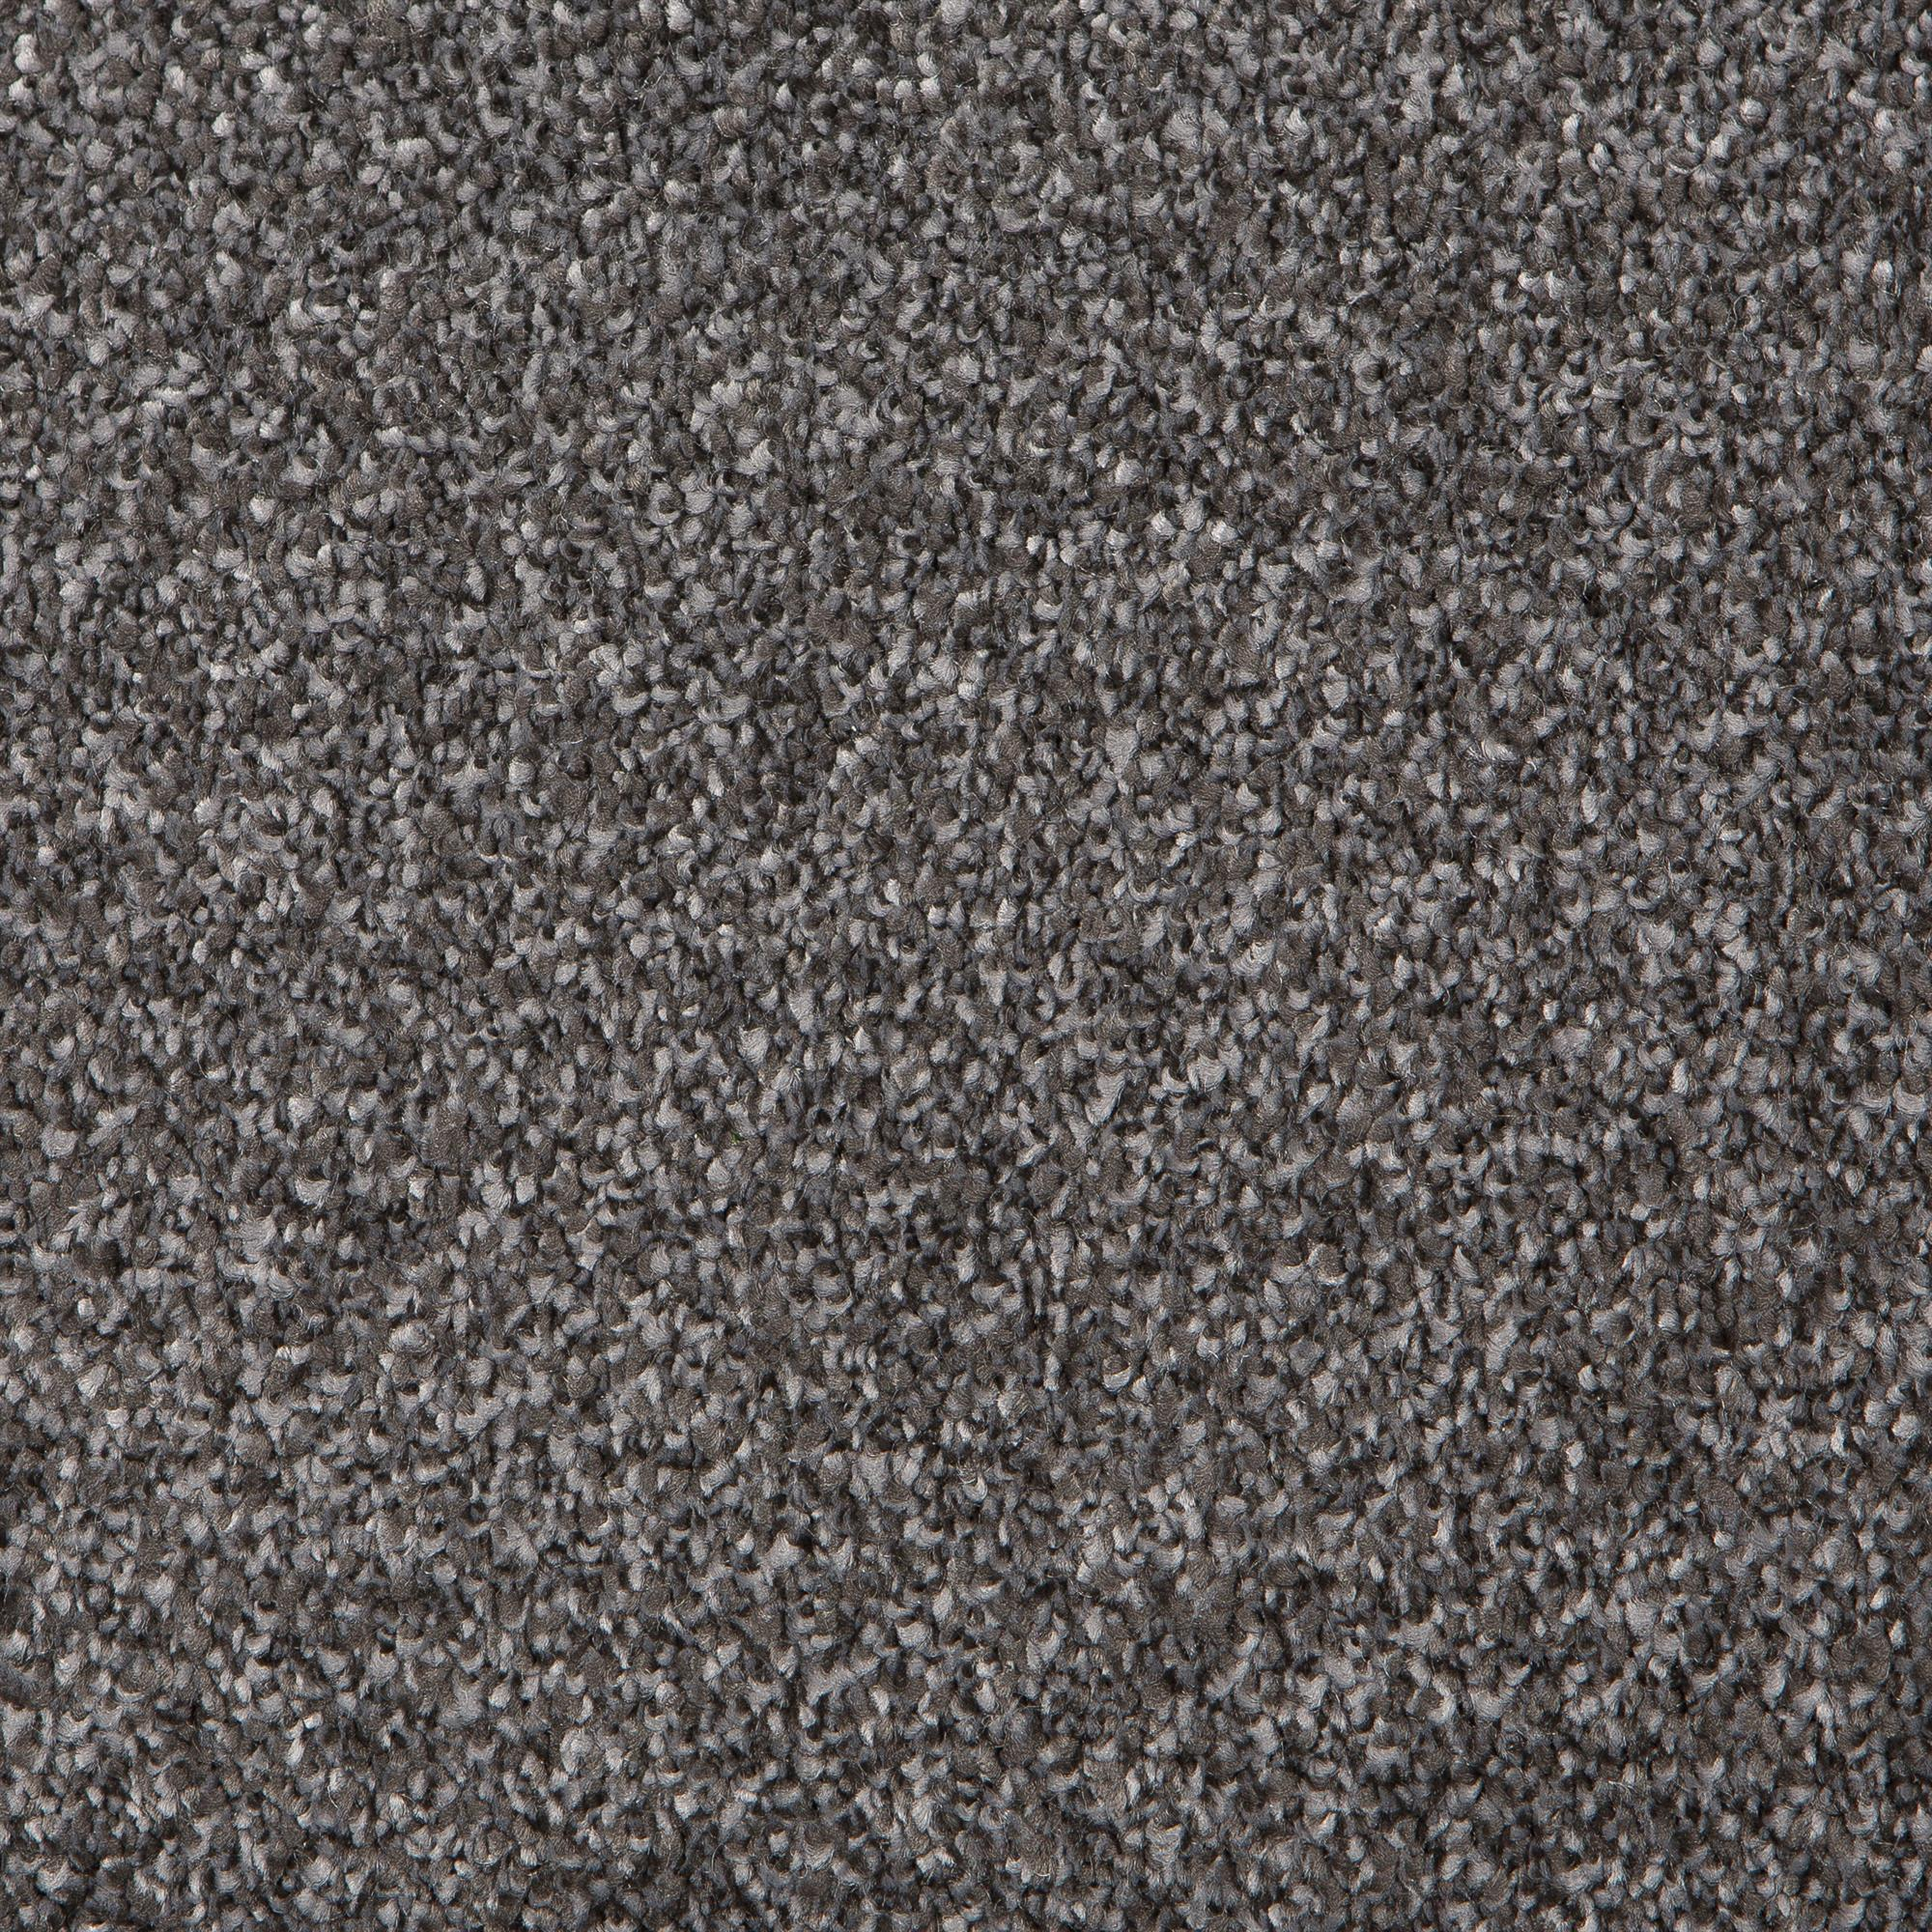 Living Charming Elite Carpet, 177 Pewter, swatch